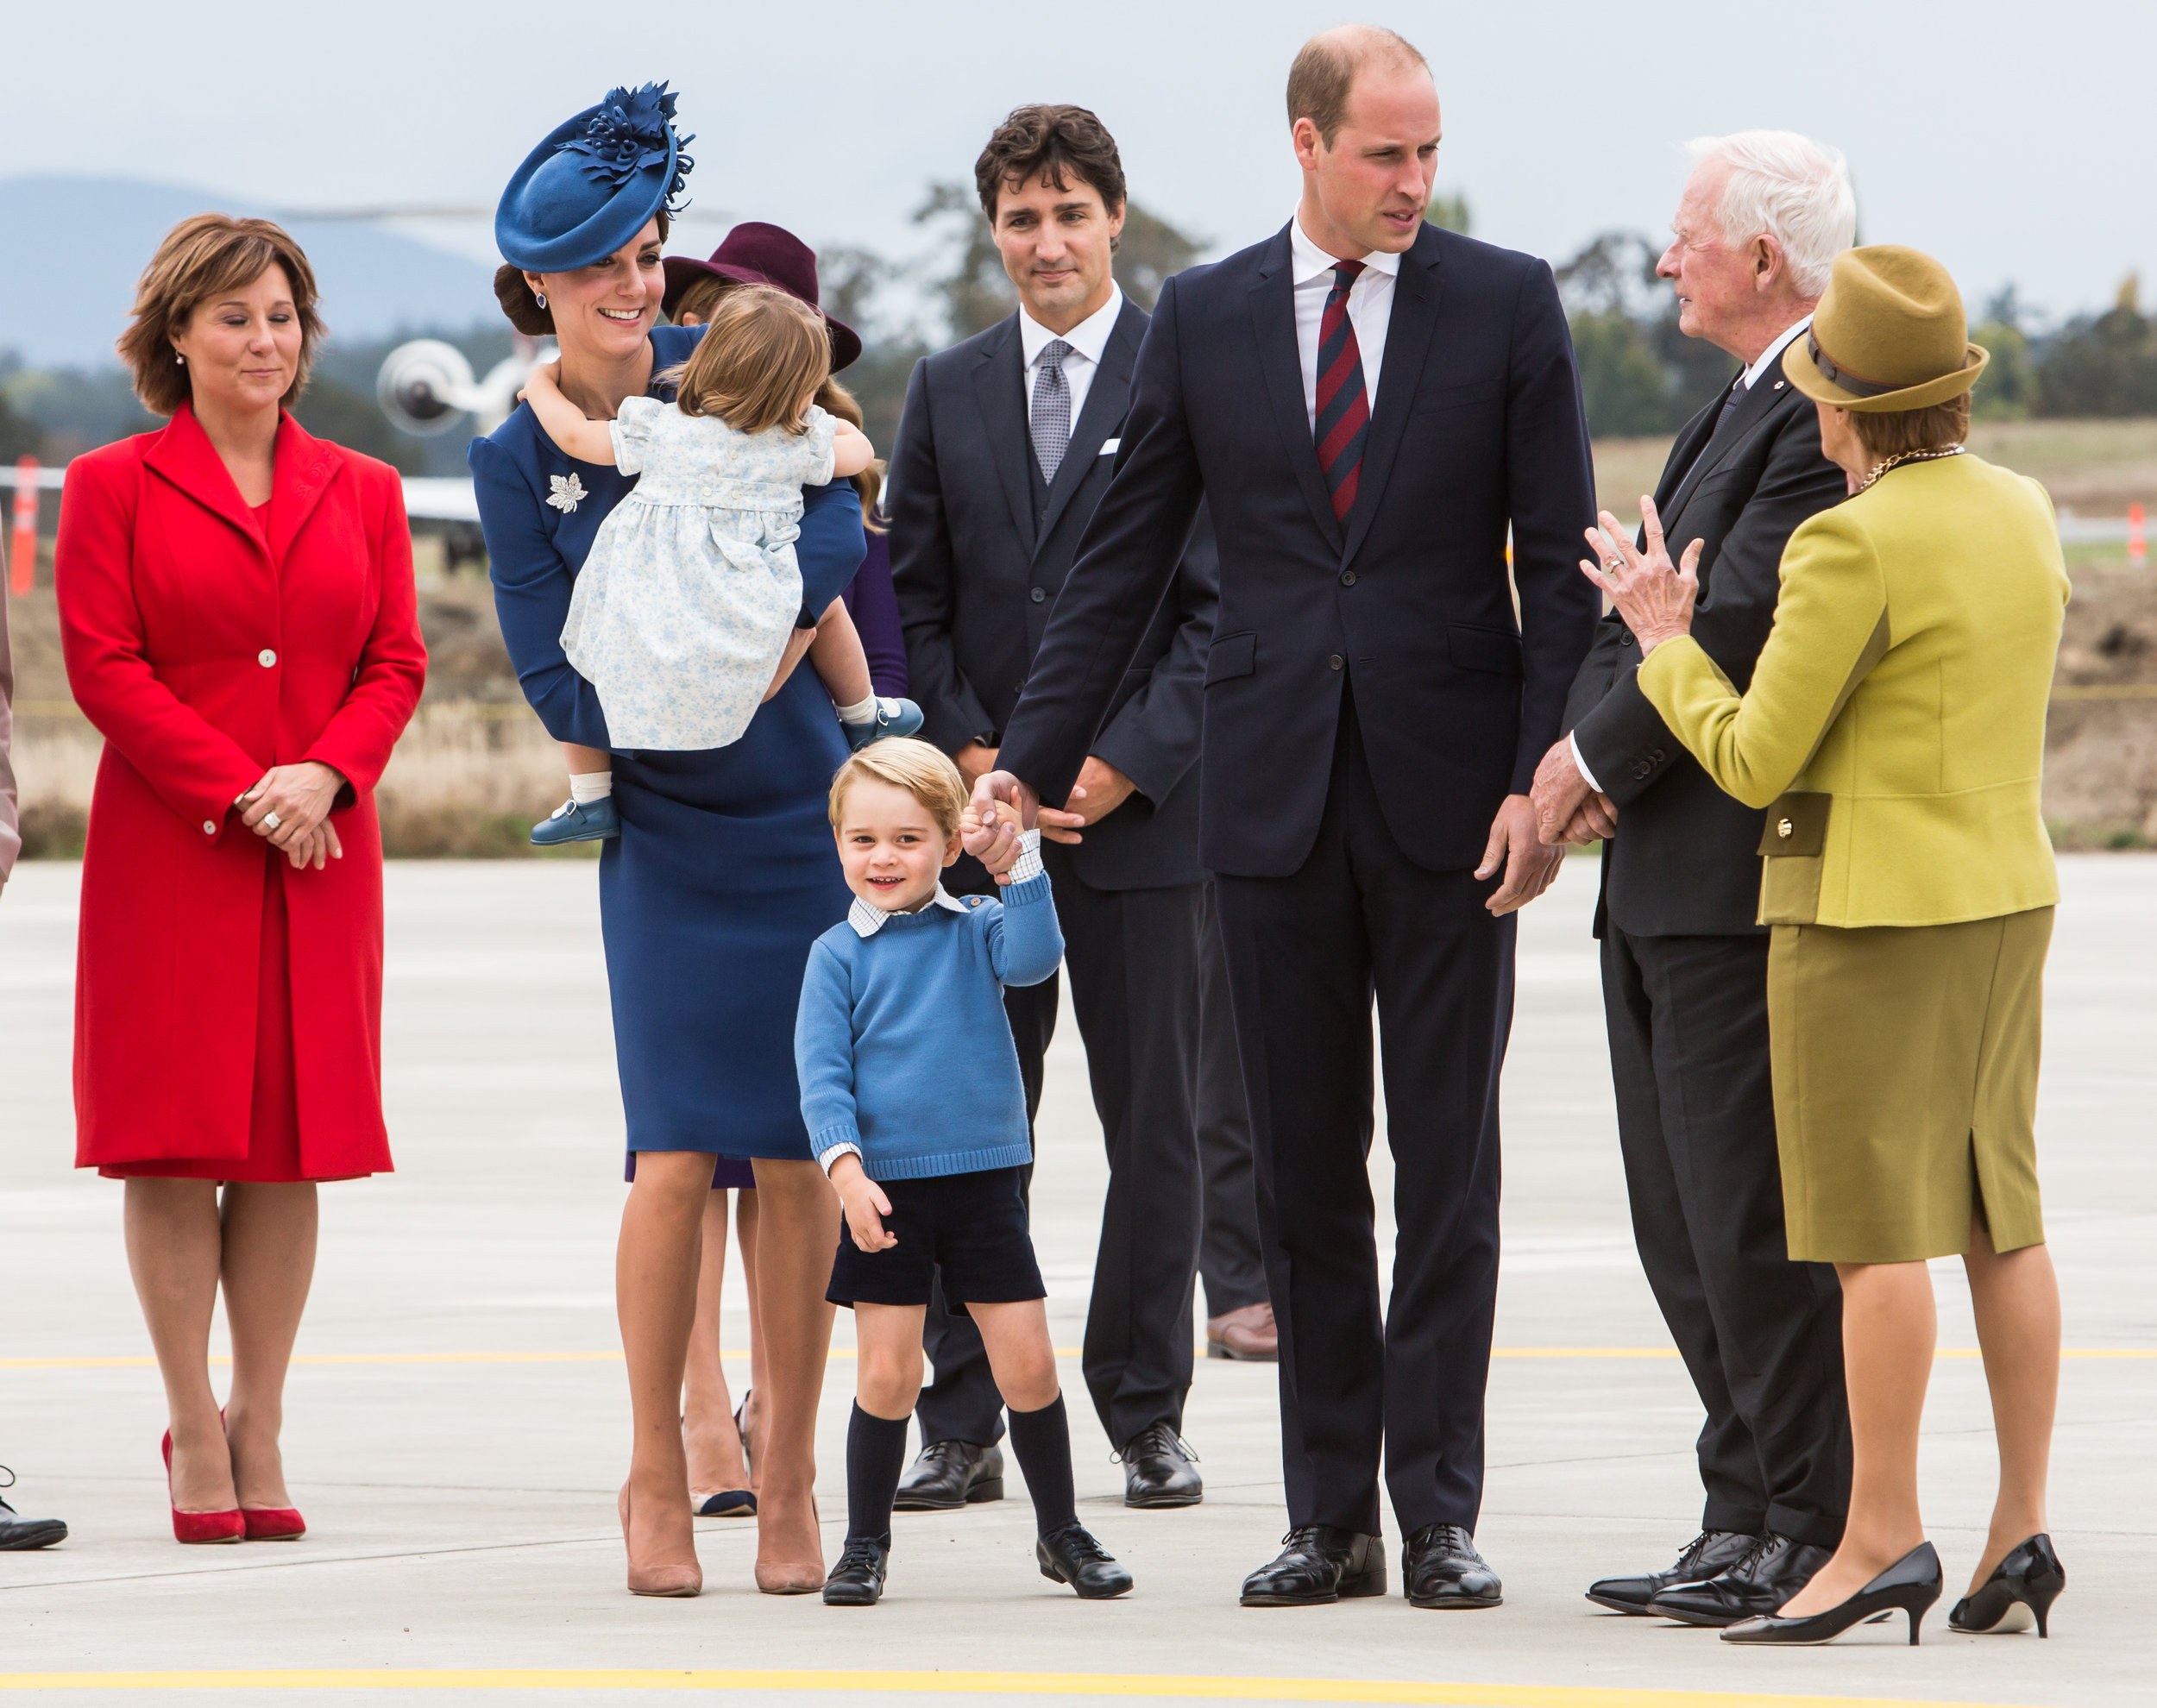 September24.RoyalTourday11111.JPG